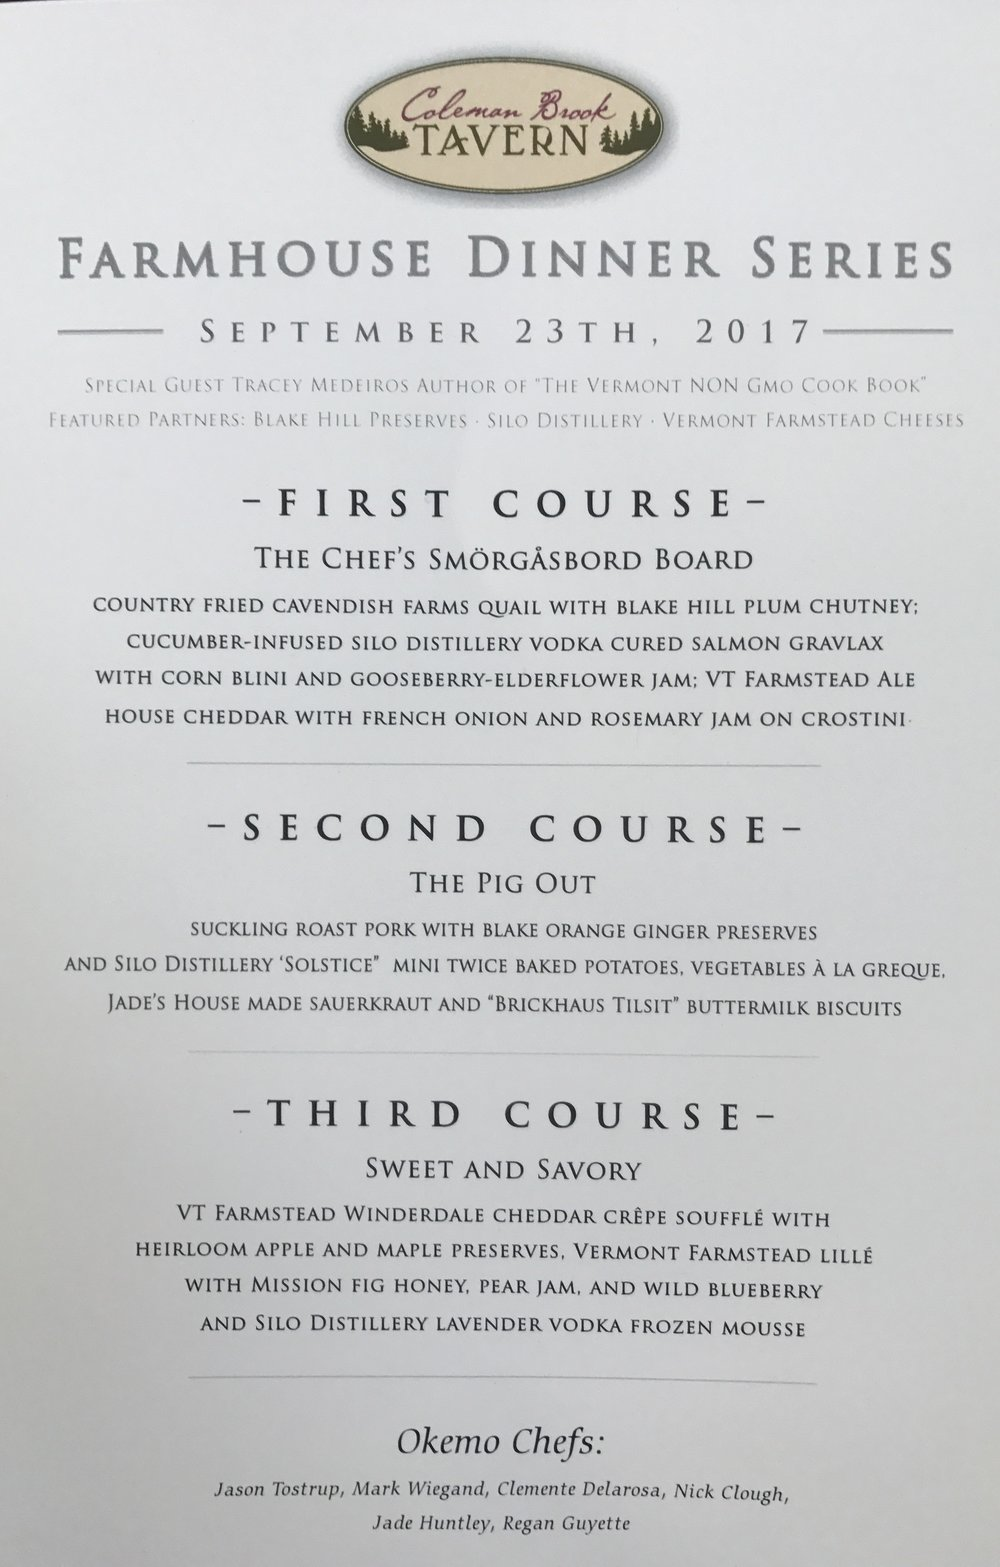 The menu from this scrumptious event!